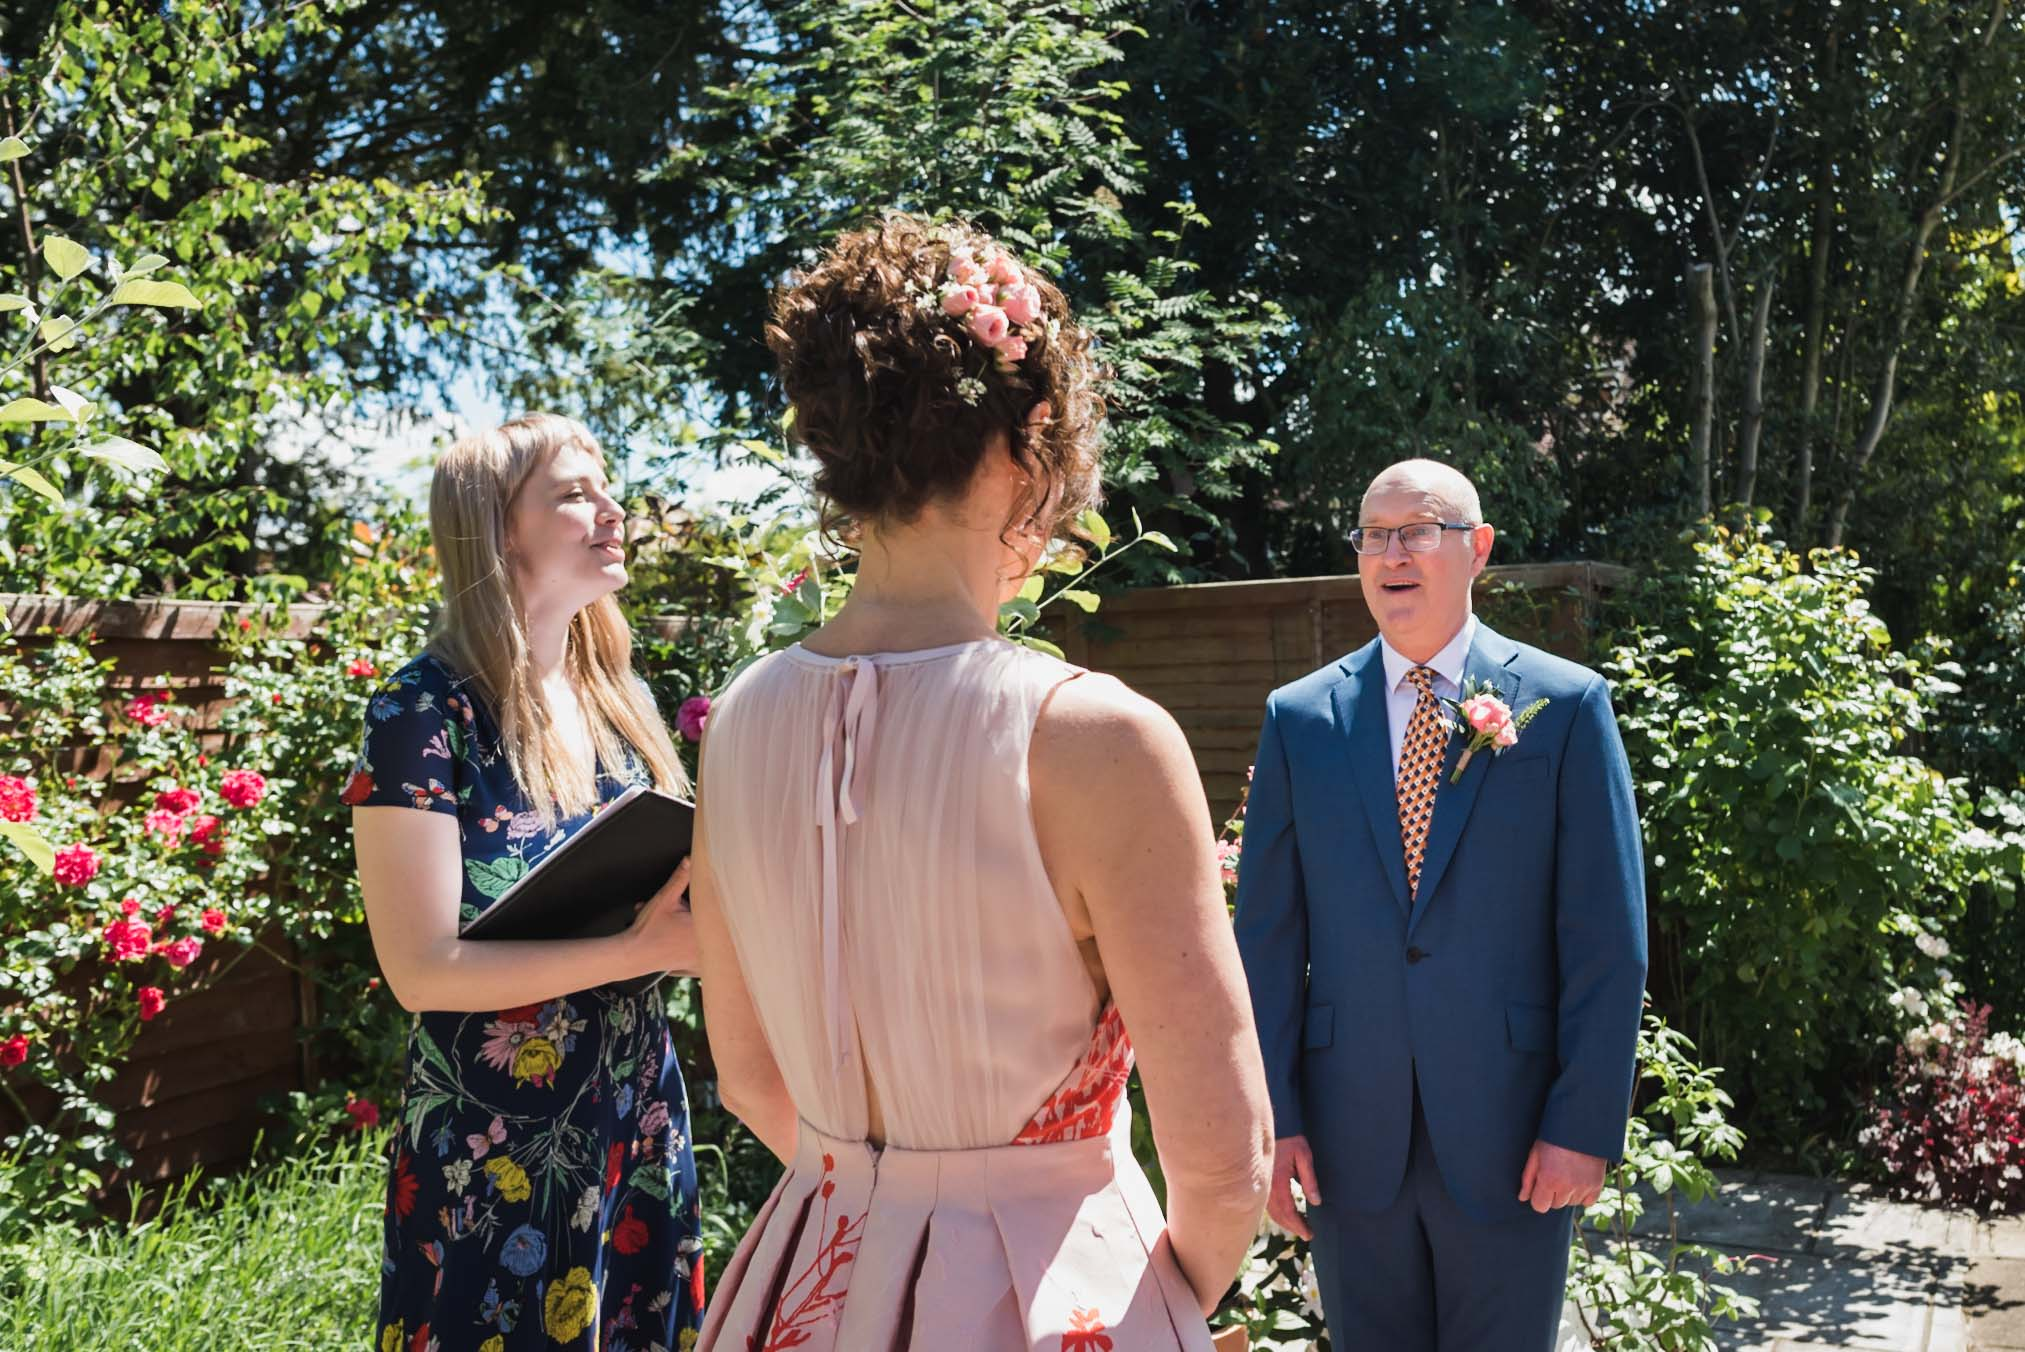 carine bea photography, groom first look at bride in back garden wedding